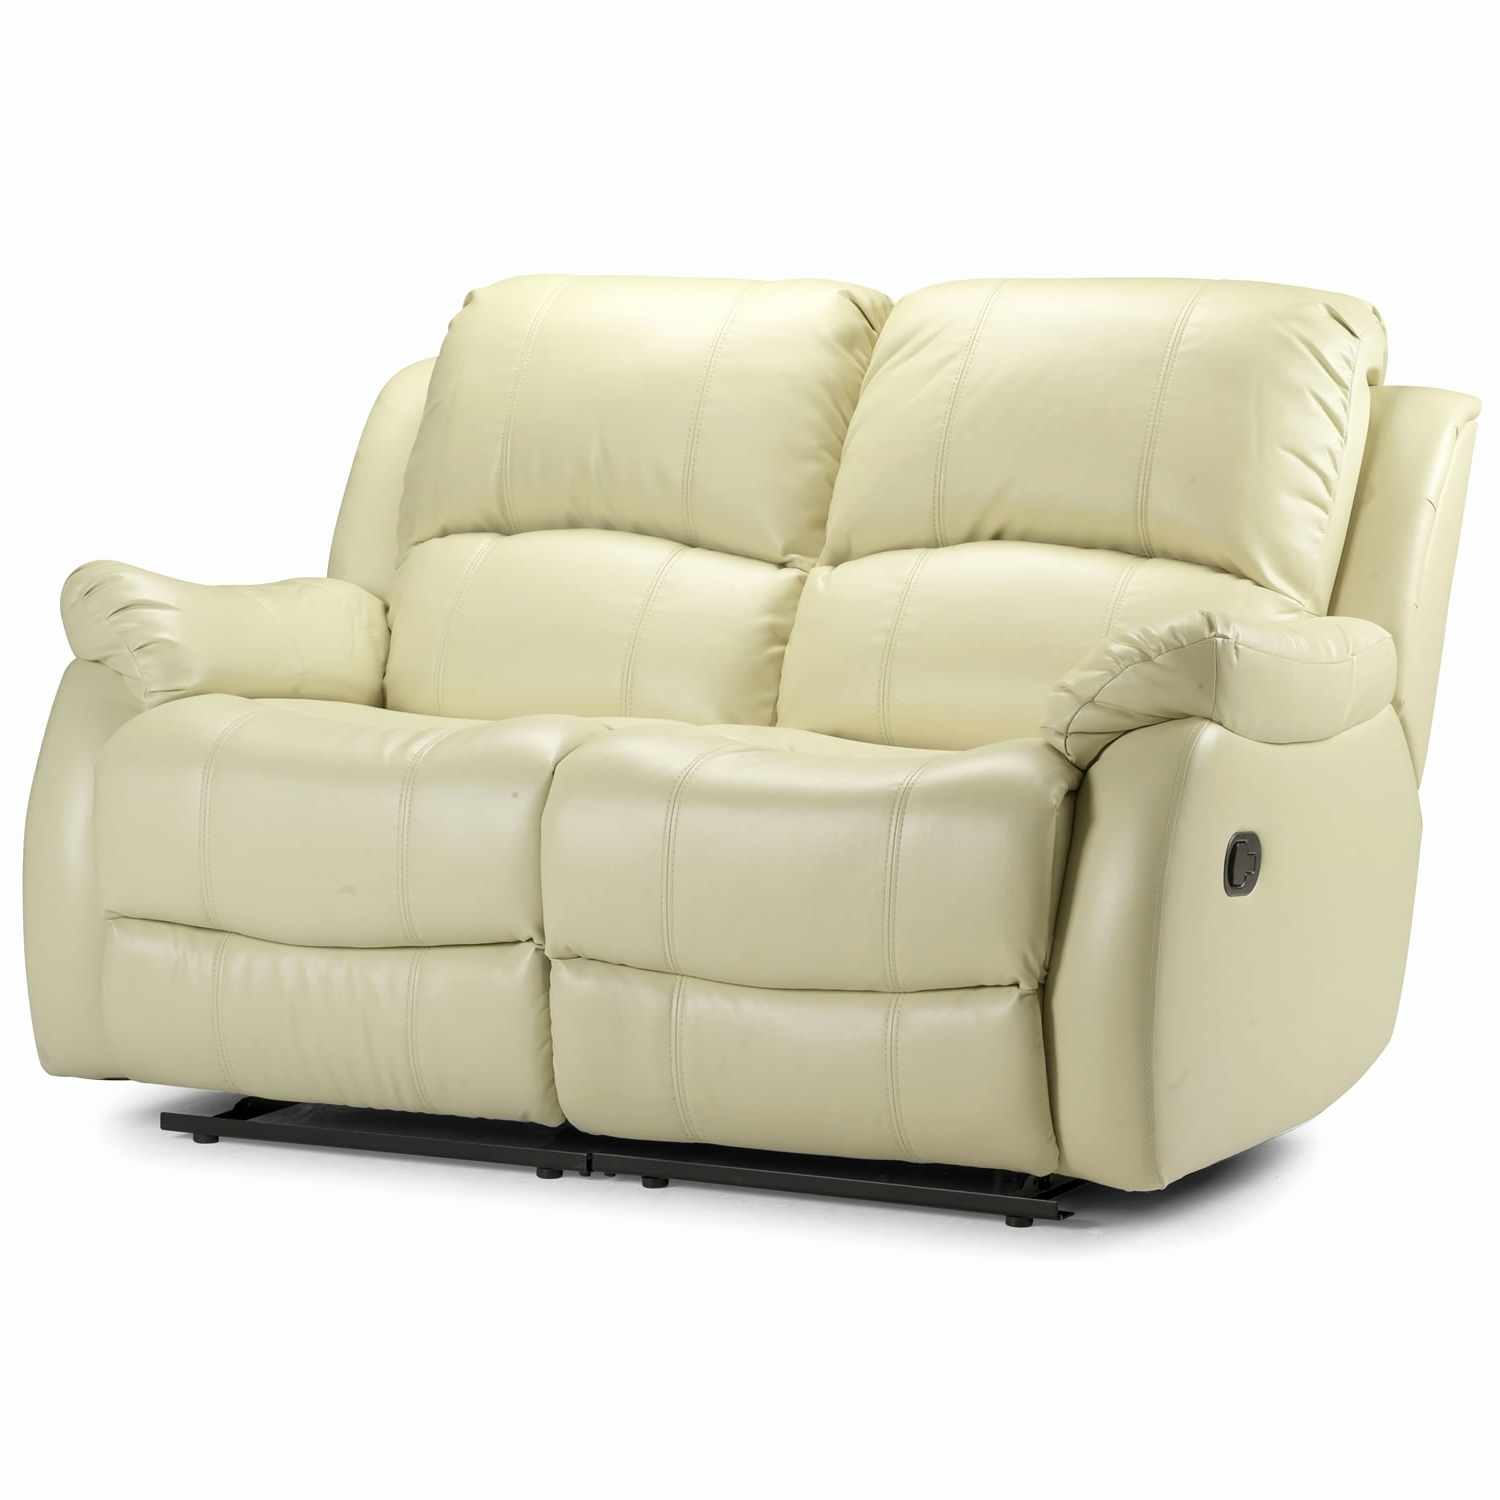 Sofa : Cream Leather Sofa New Sofa 2 Seater Cream Leather Sofa Within Favorite 2 Seater Recliner Leather Sofas (View 19 of 20)